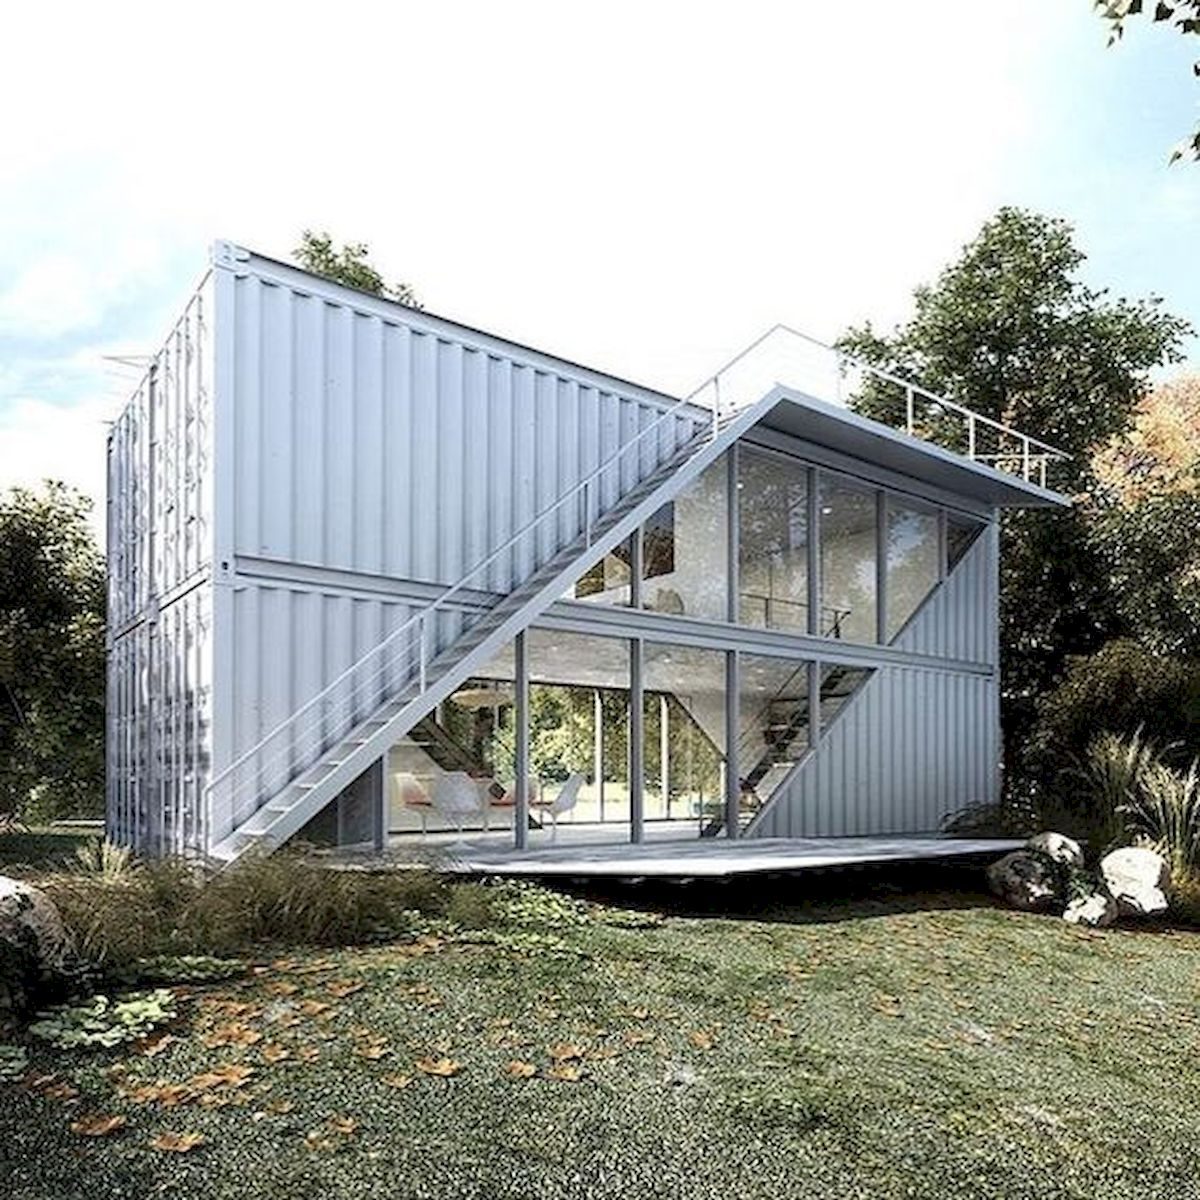 33 Awesome Container House Plans Design Ideas (22)